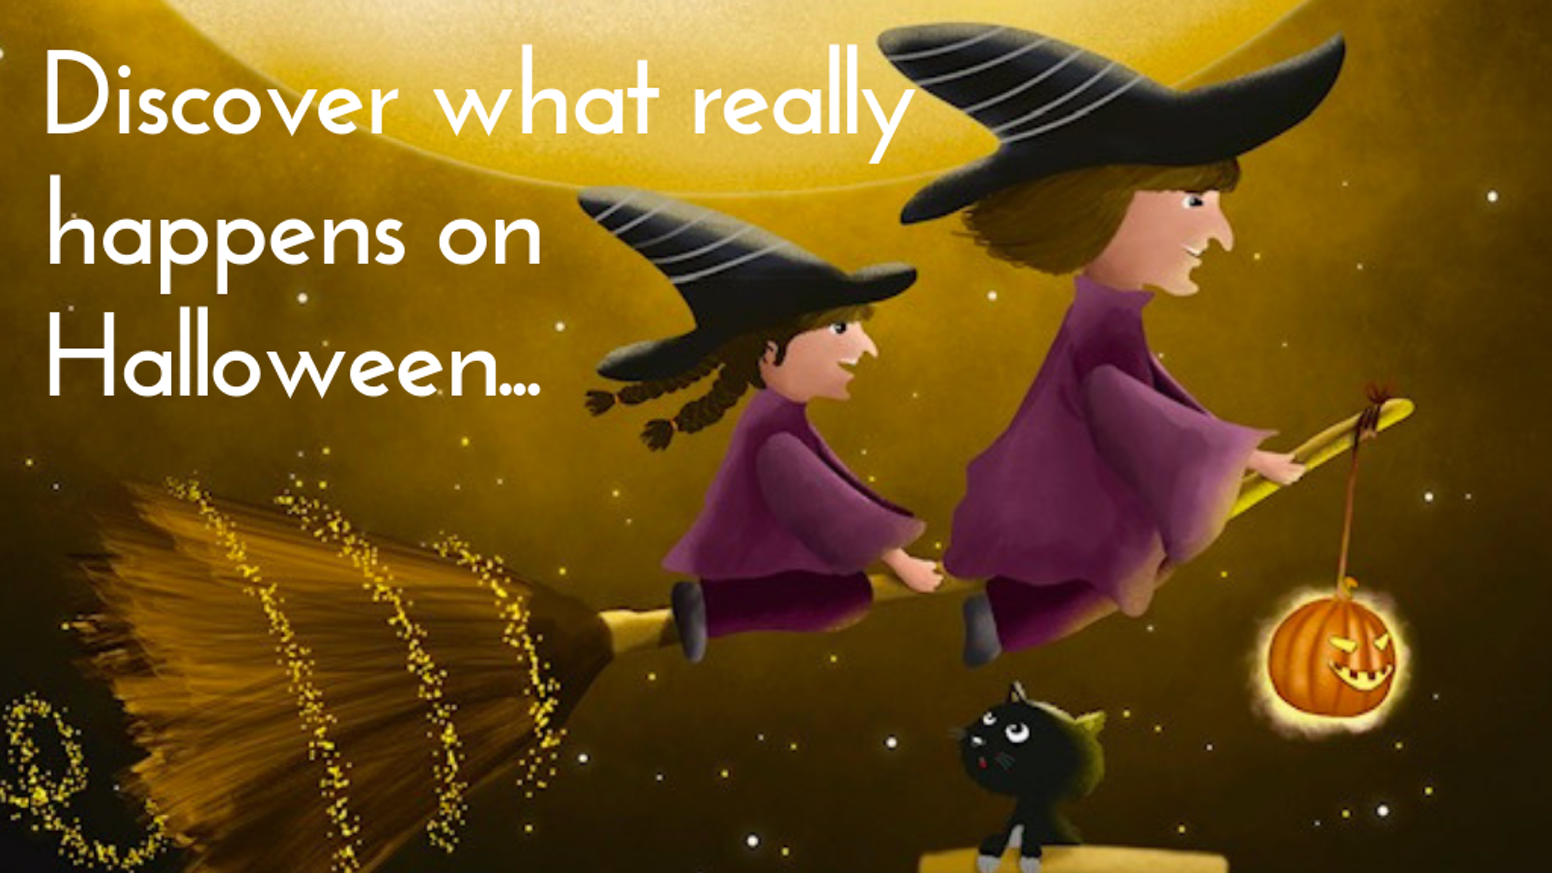 A spooky rhyming children's book for ghouls and goblins ages 4-8. Did you miss the magical fun and bonus rewards? Don't worry—you can buy the book today on Amazon.